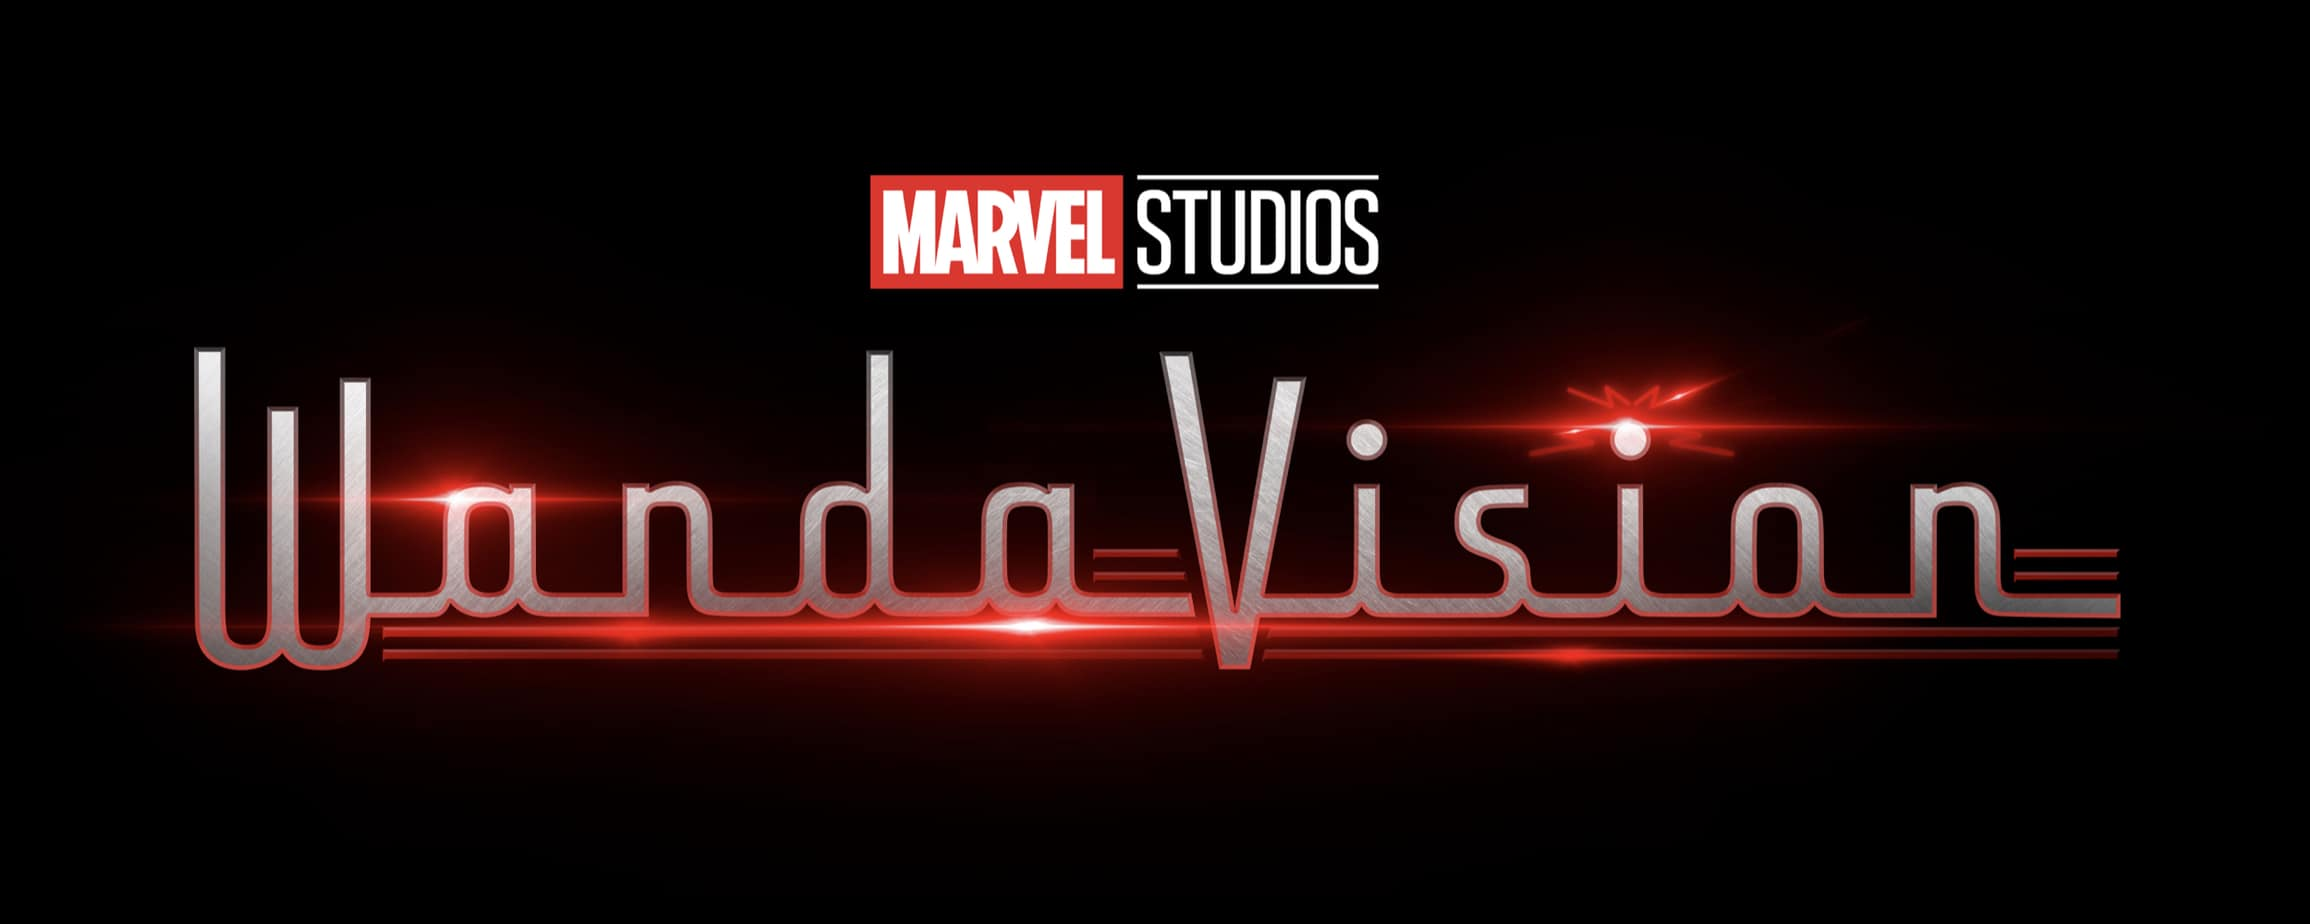 what marvel movies to watch before wandavision